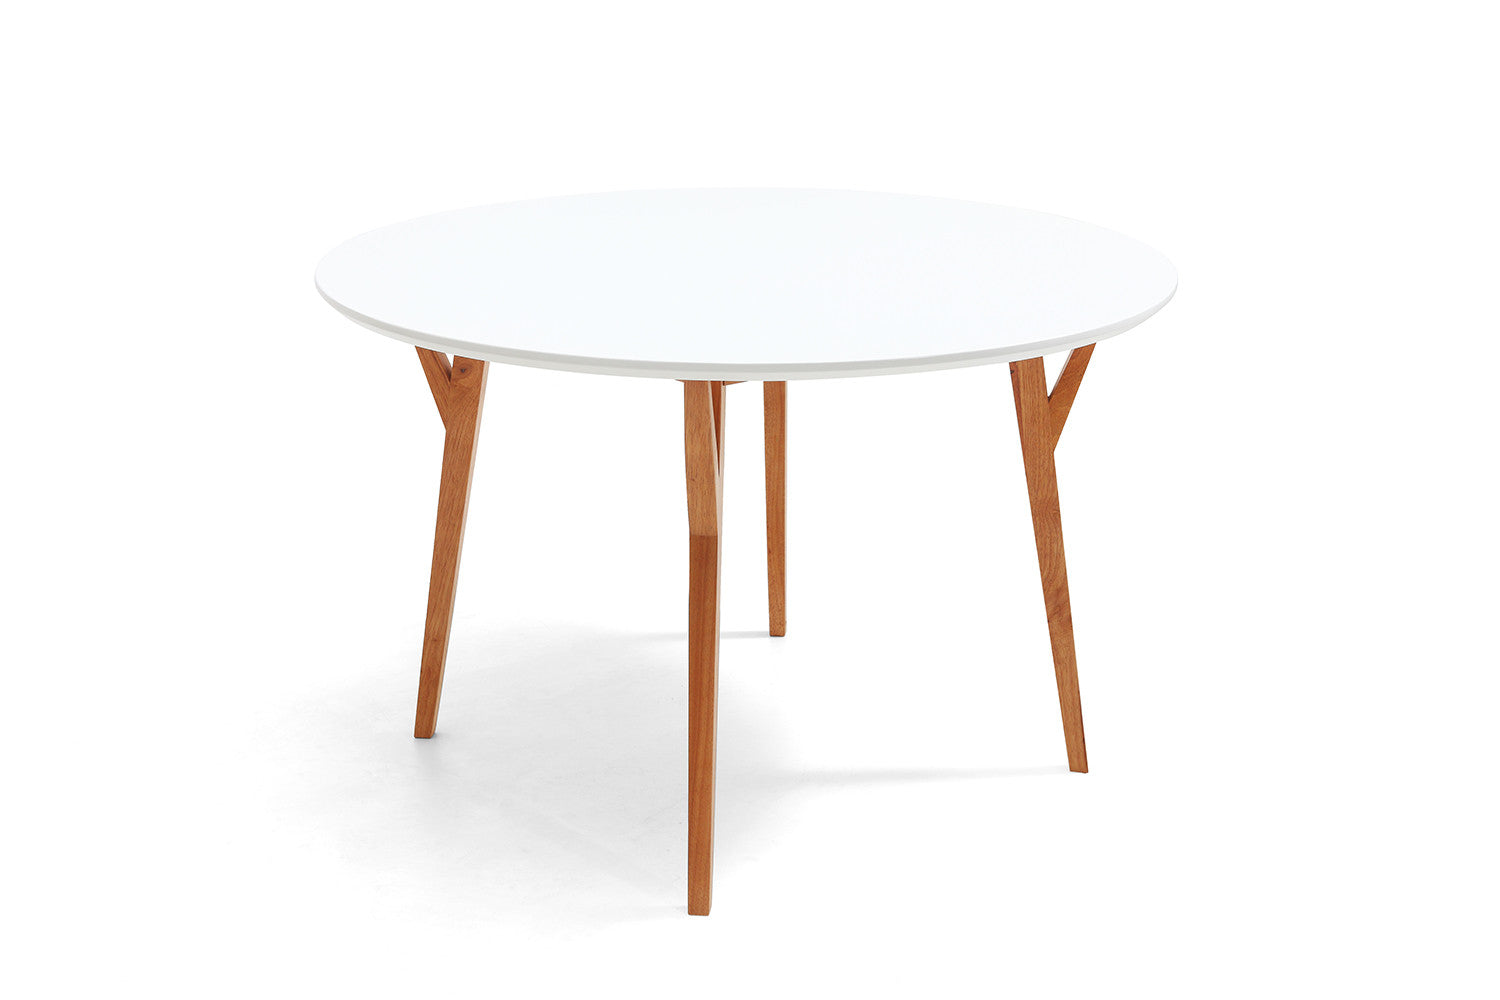 Table de salle manger ronde design scandinave moesa dewarens - Table salle a manger but ...